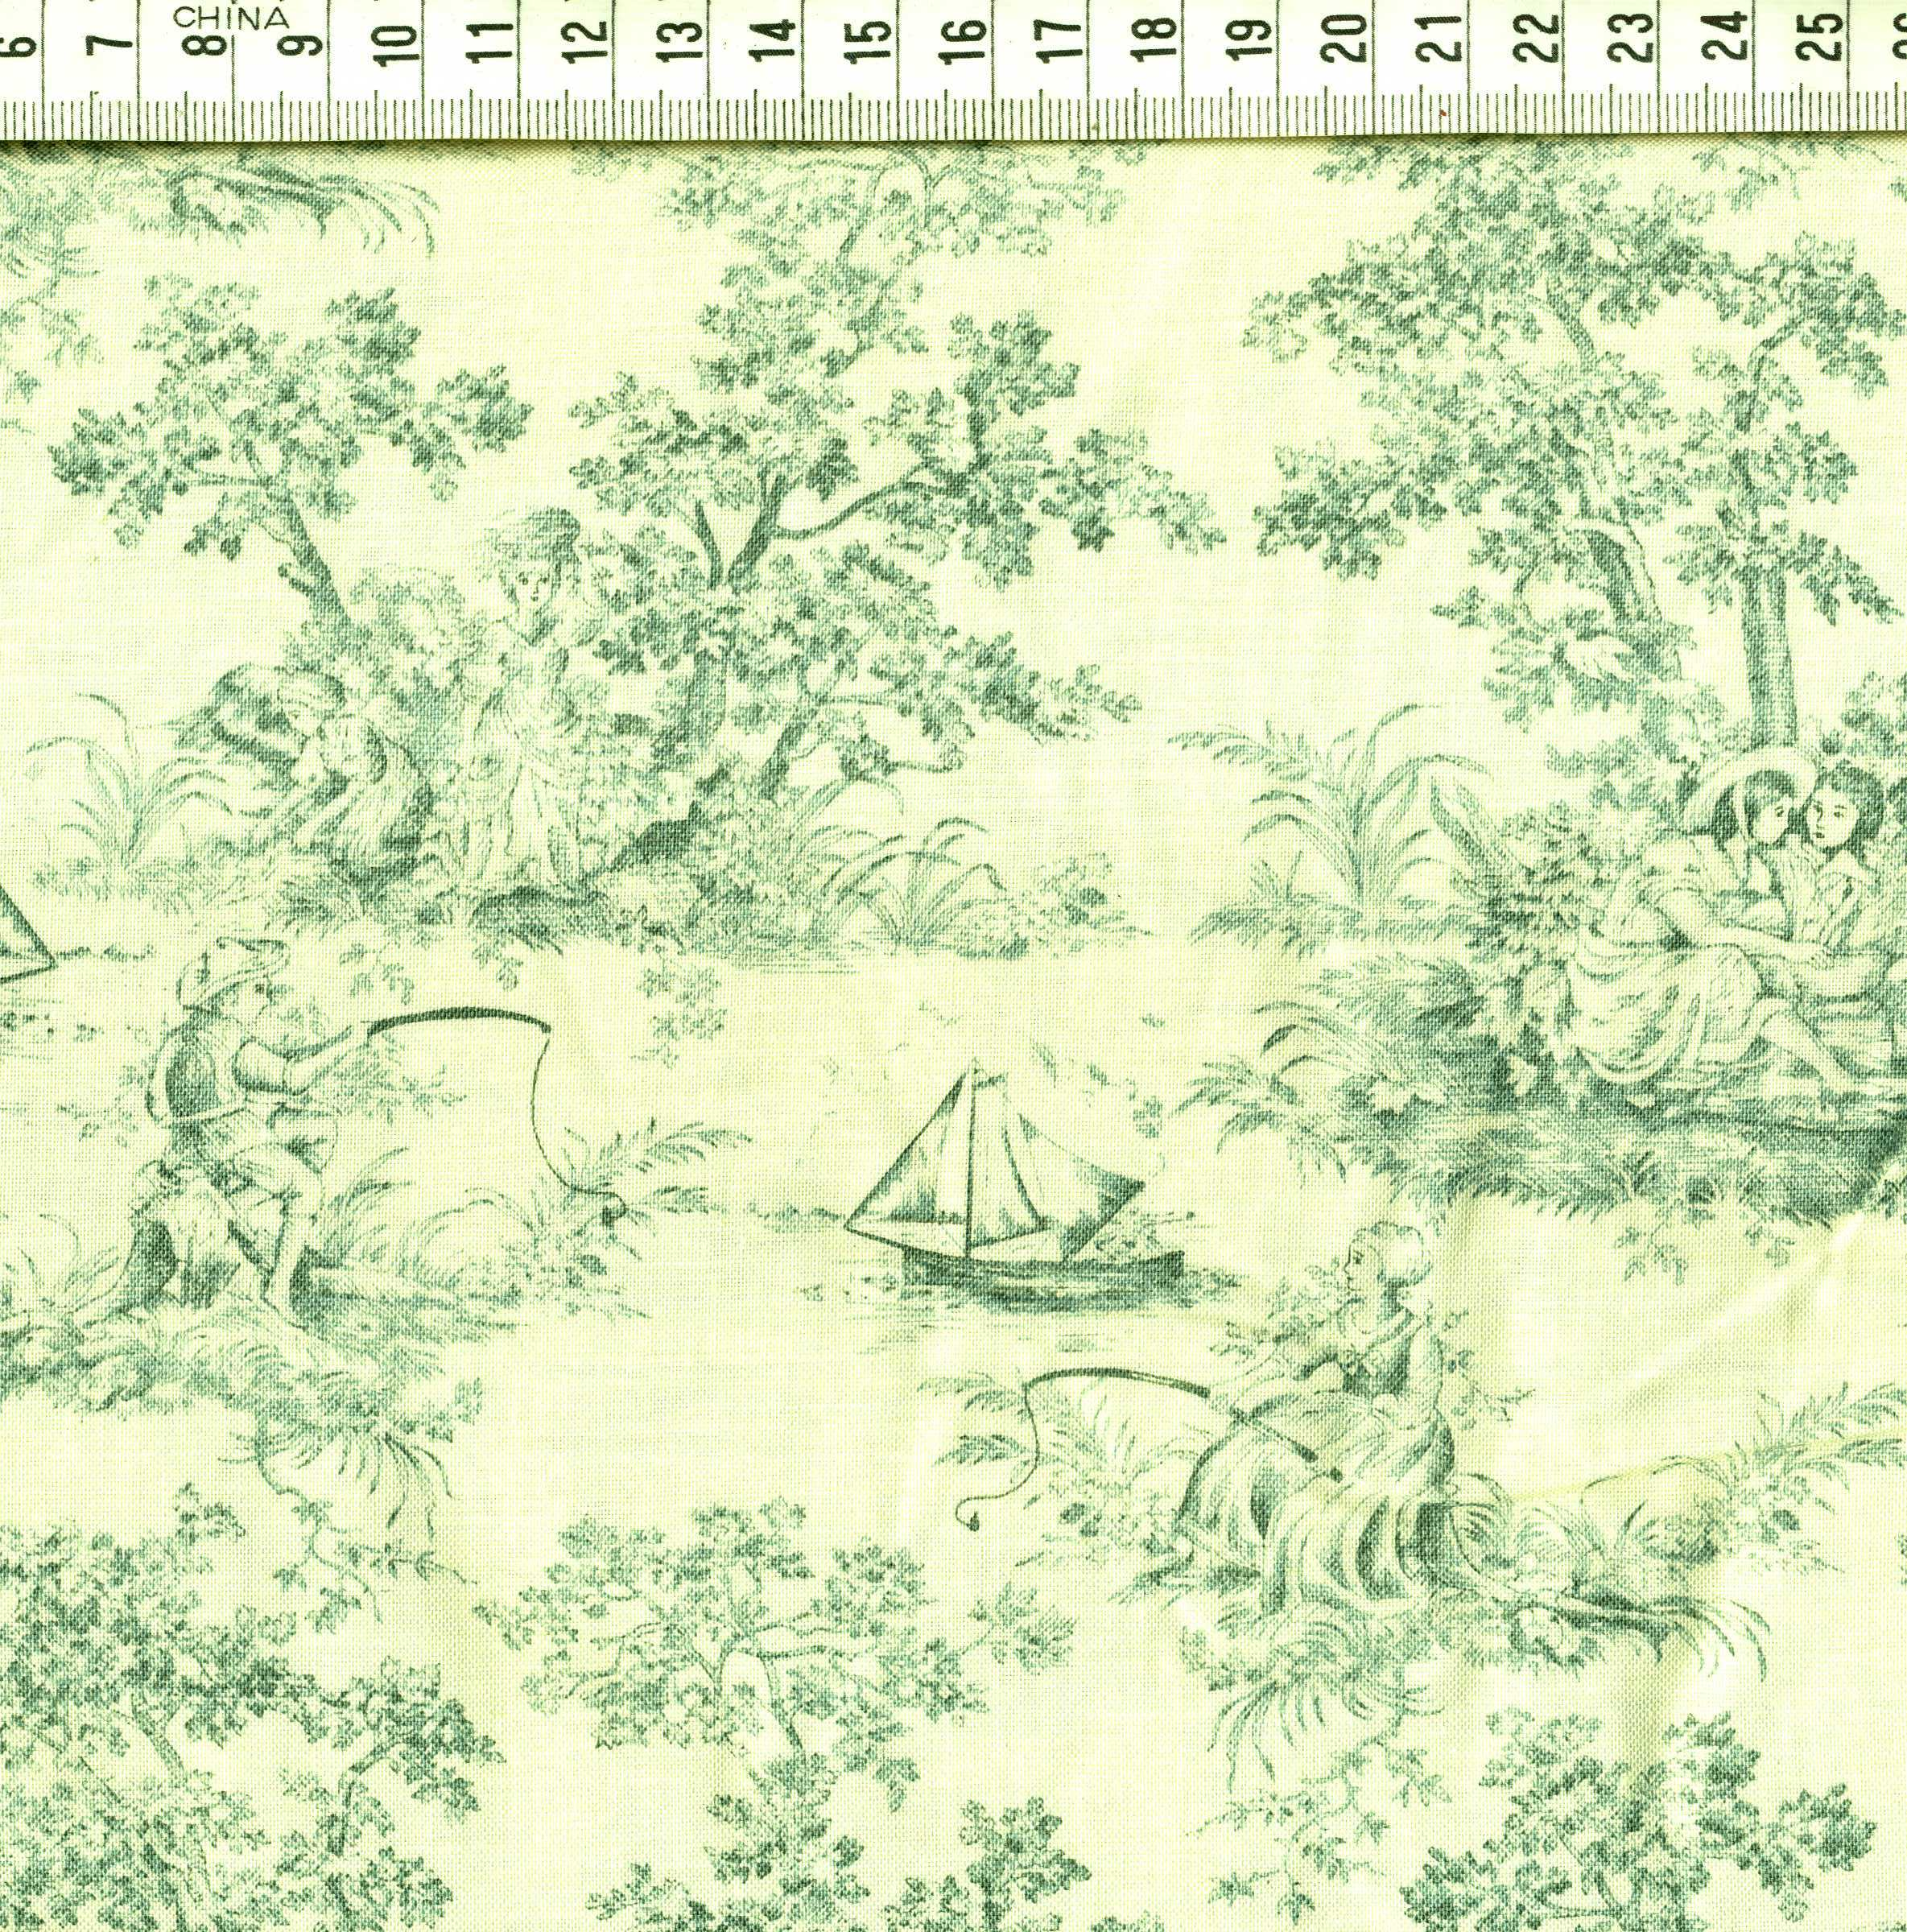 toile de jouy motifs bleu vert fond cru roland besset l 39 incontournable du patchwork. Black Bedroom Furniture Sets. Home Design Ideas